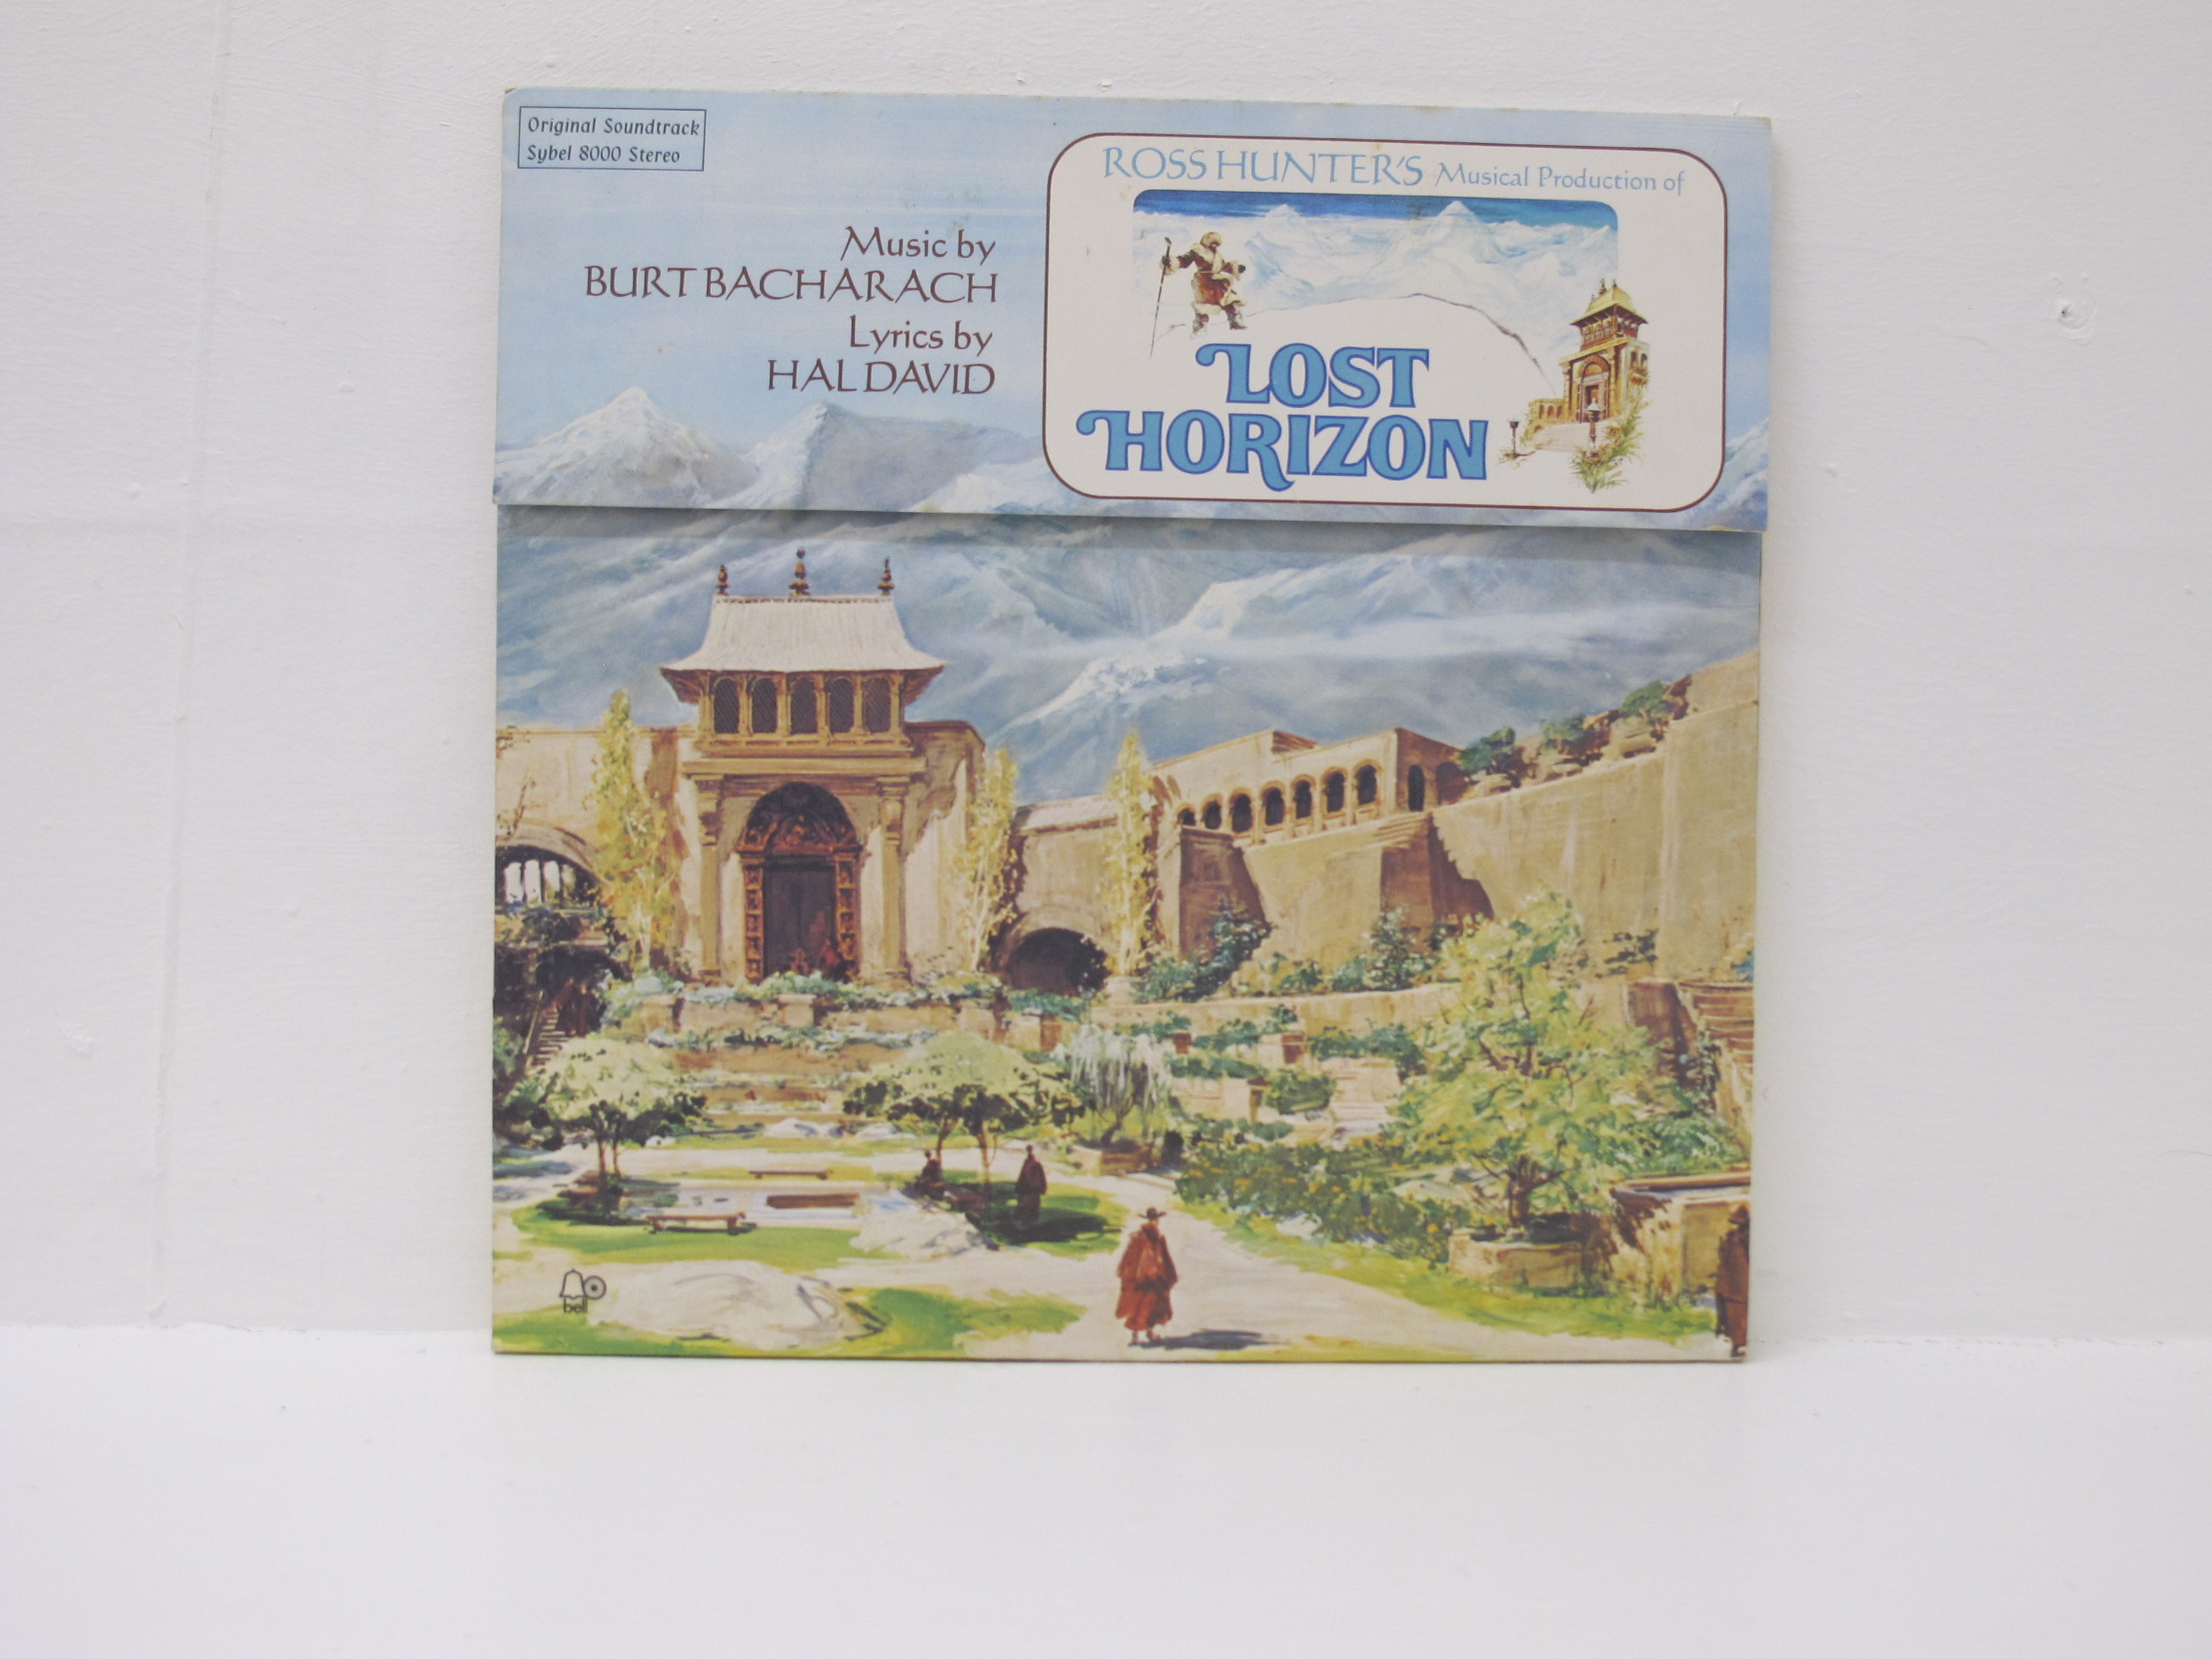 Lost Horizon - Original Soundtrack